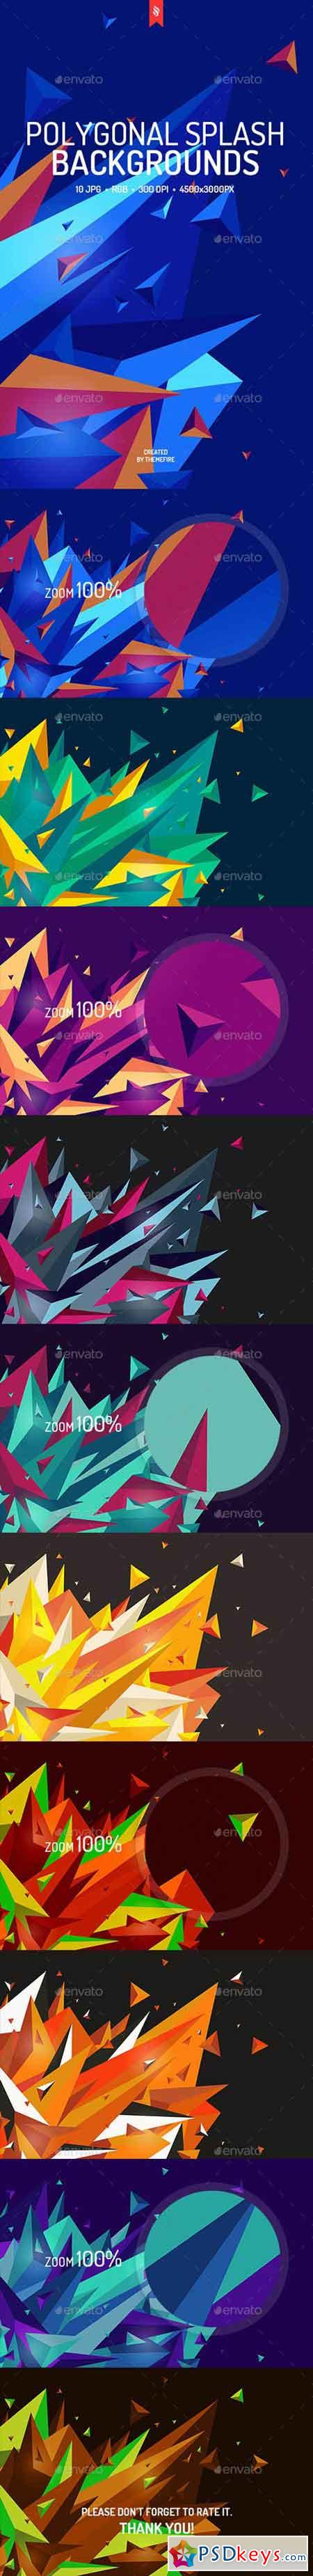 Polygonal Splash Backgrounds 19529201